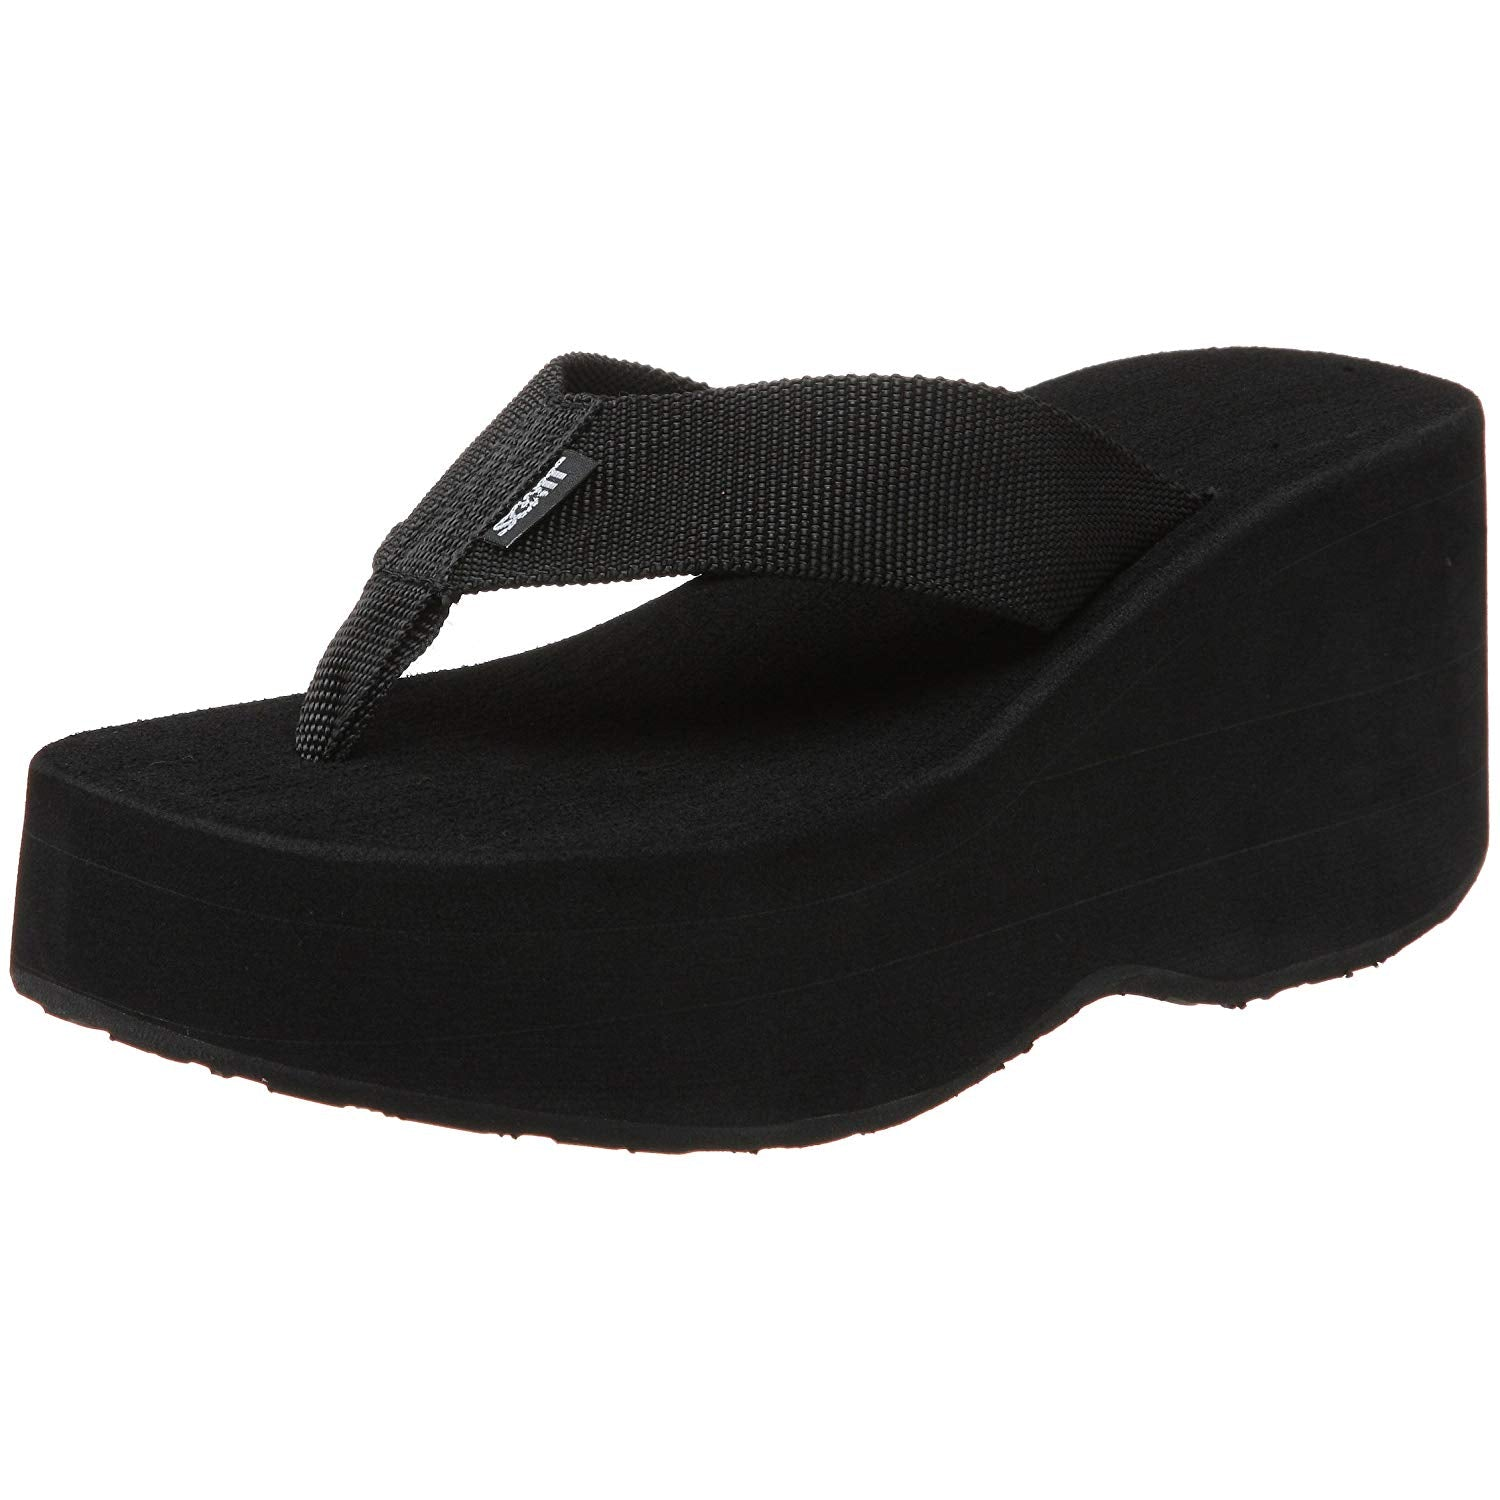 Scott Wedge Wahine Flip Flops | Tall Platform Sandals - AlohaShoes.com